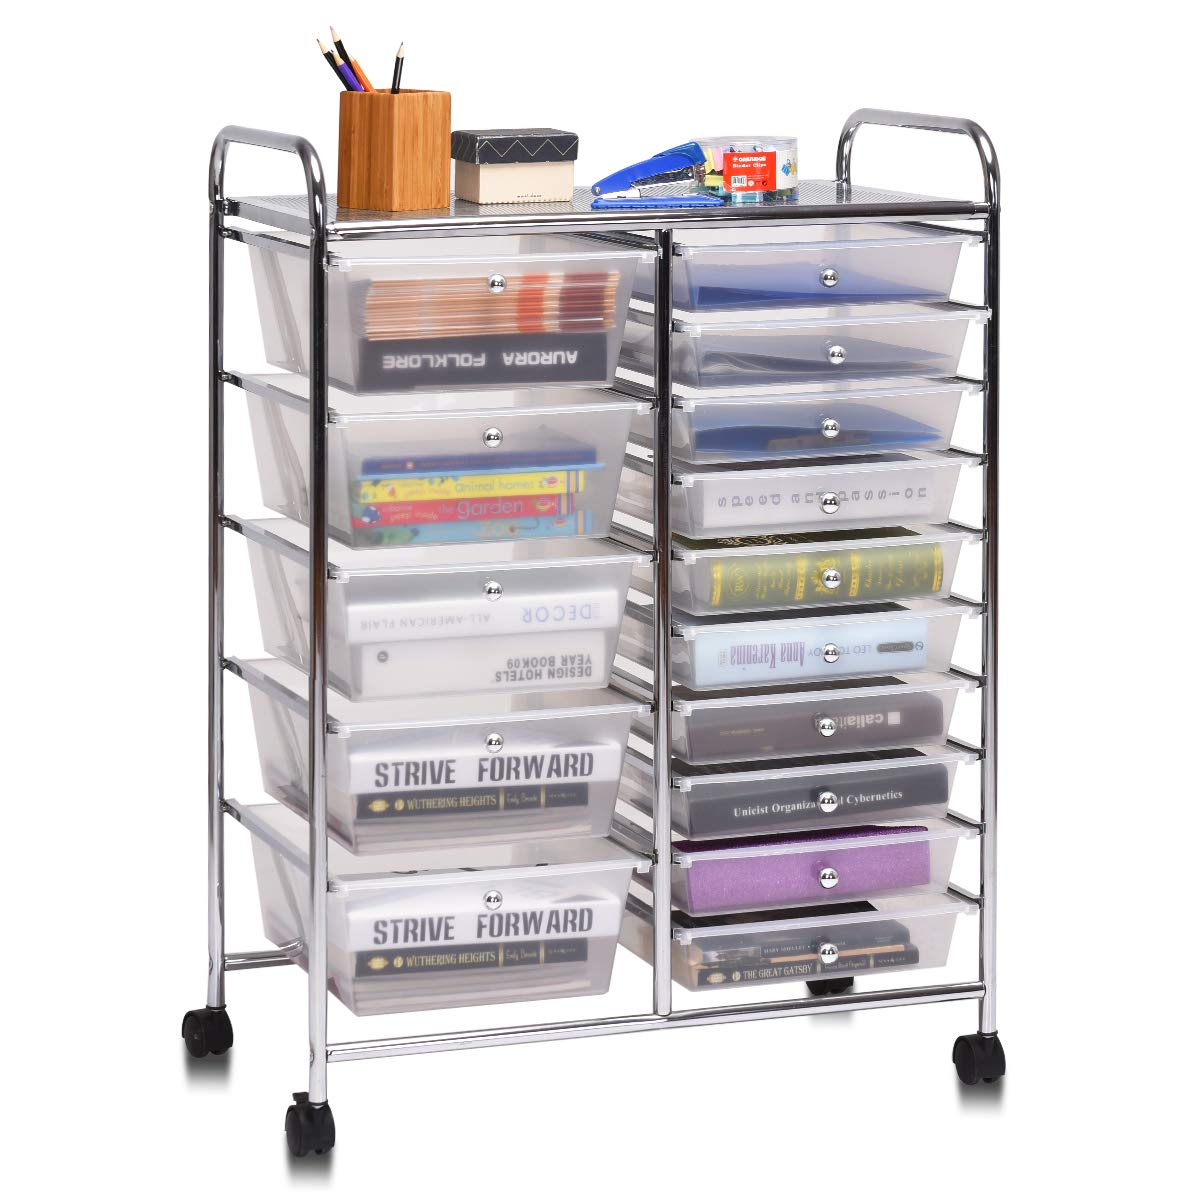 Giantex 15 Drawer Rolling Storage Cart Tools Scrapbook Paper Office School Organizer, Clear by Giantex